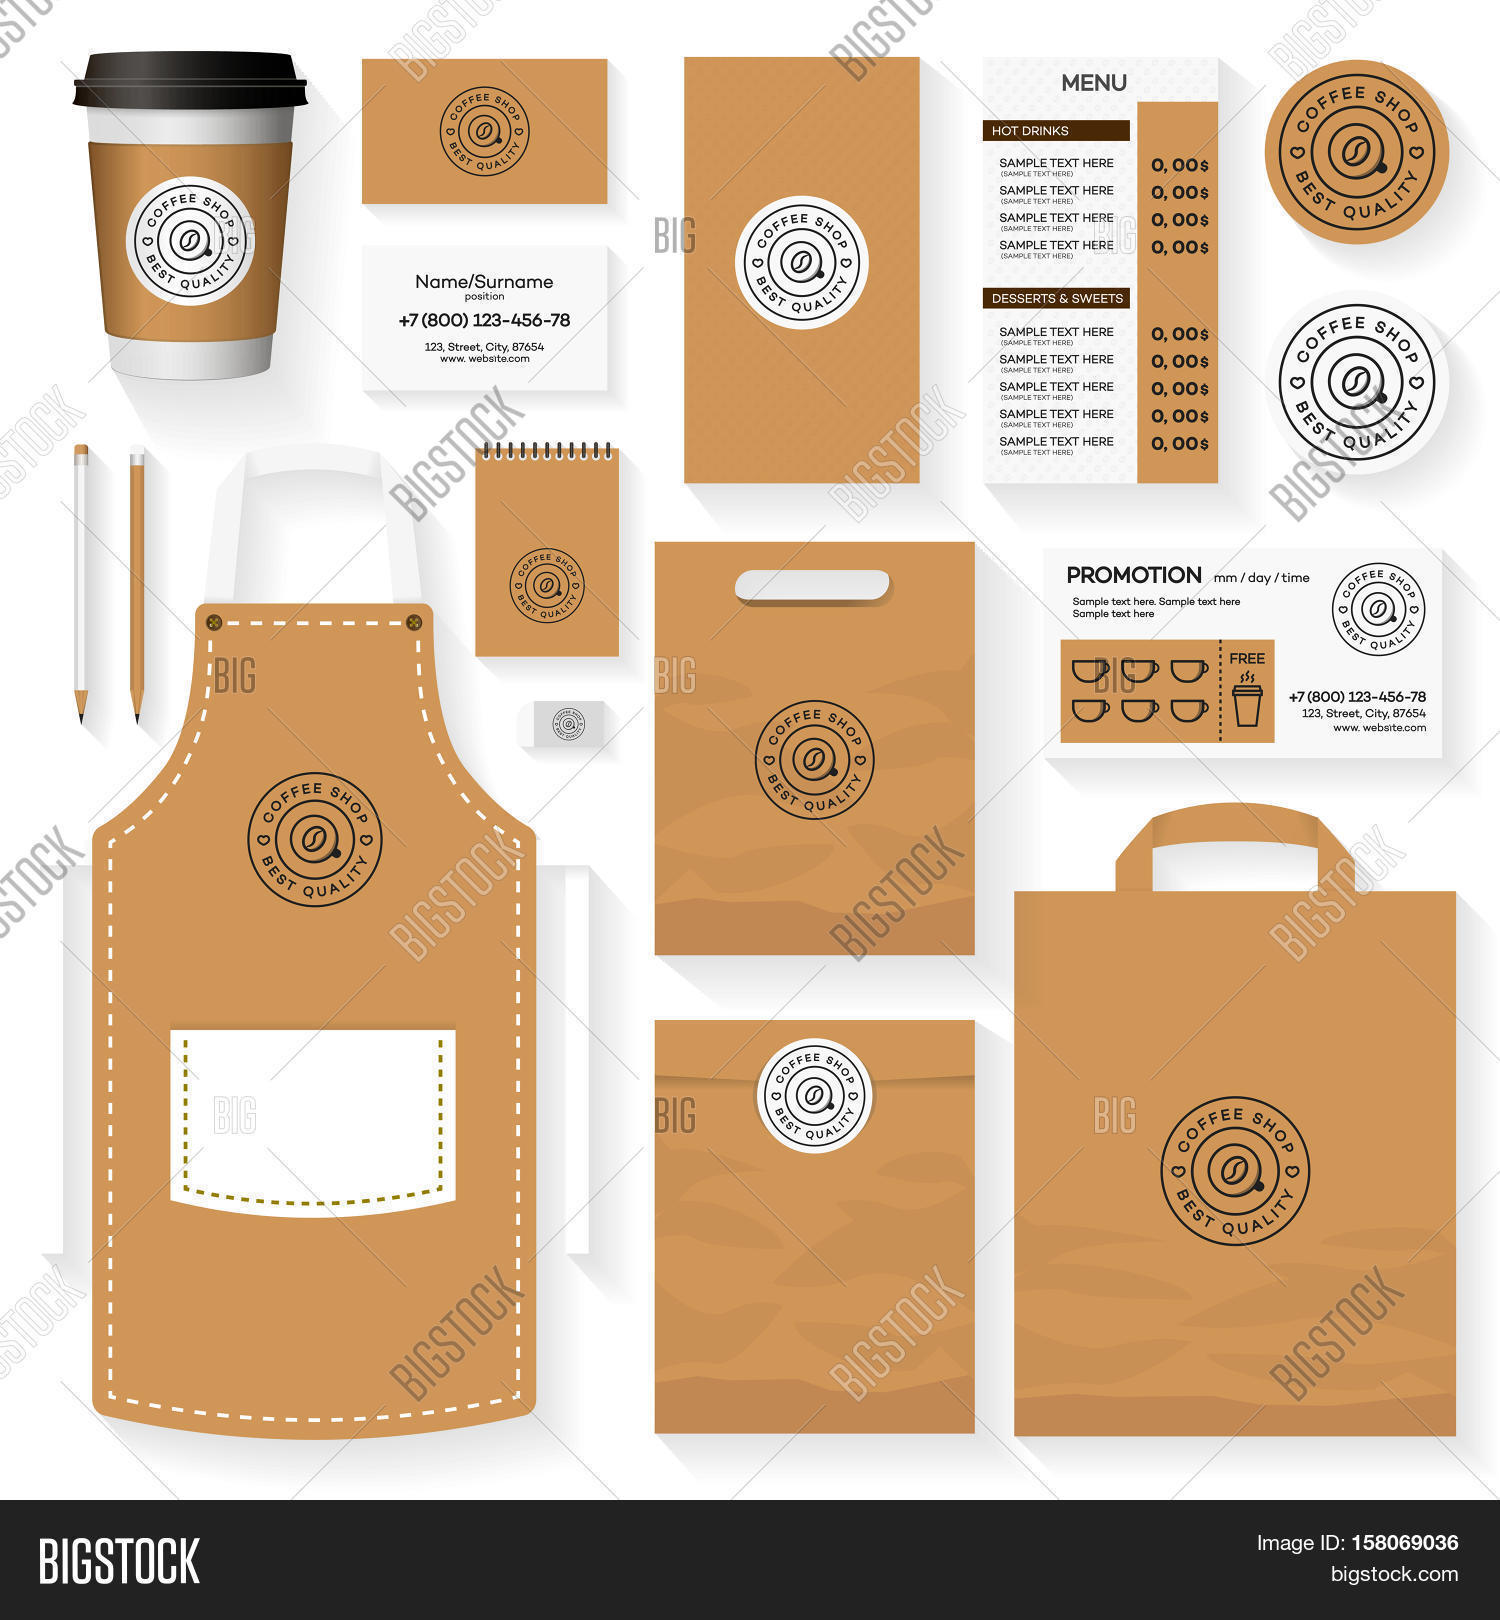 coffee shop corporate identity template design set with coffee